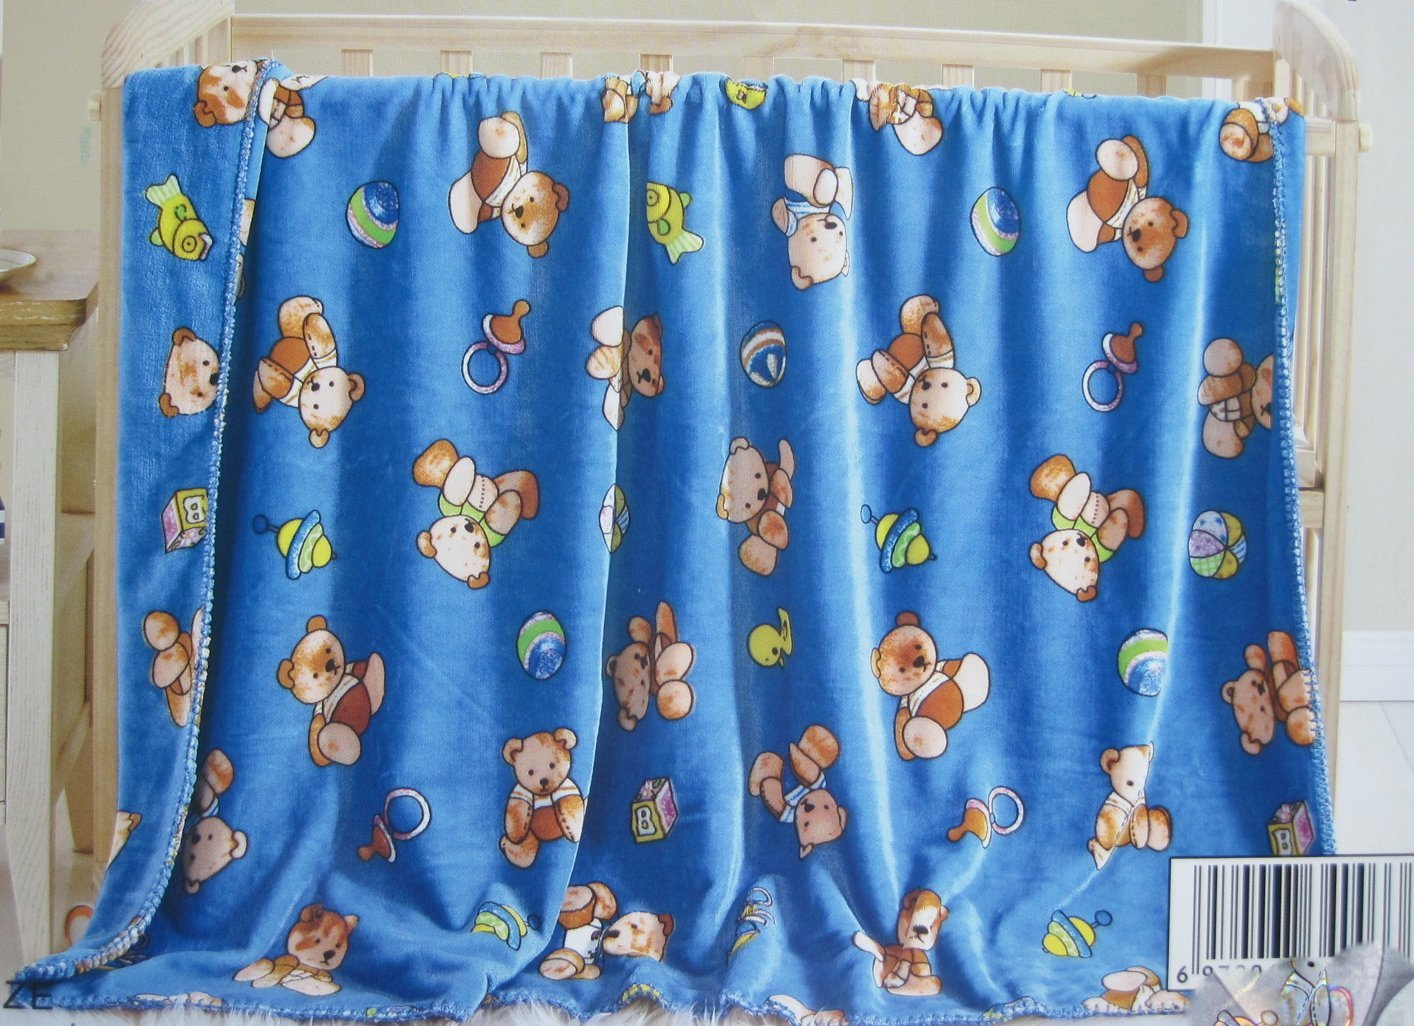 Teddy Bear Design Printed Double Sides 2 Ply Gold Mink Flannel Super Soft Baby Toddler Boys Girls Children Blanket Throw --- Teddy Bear on Blue